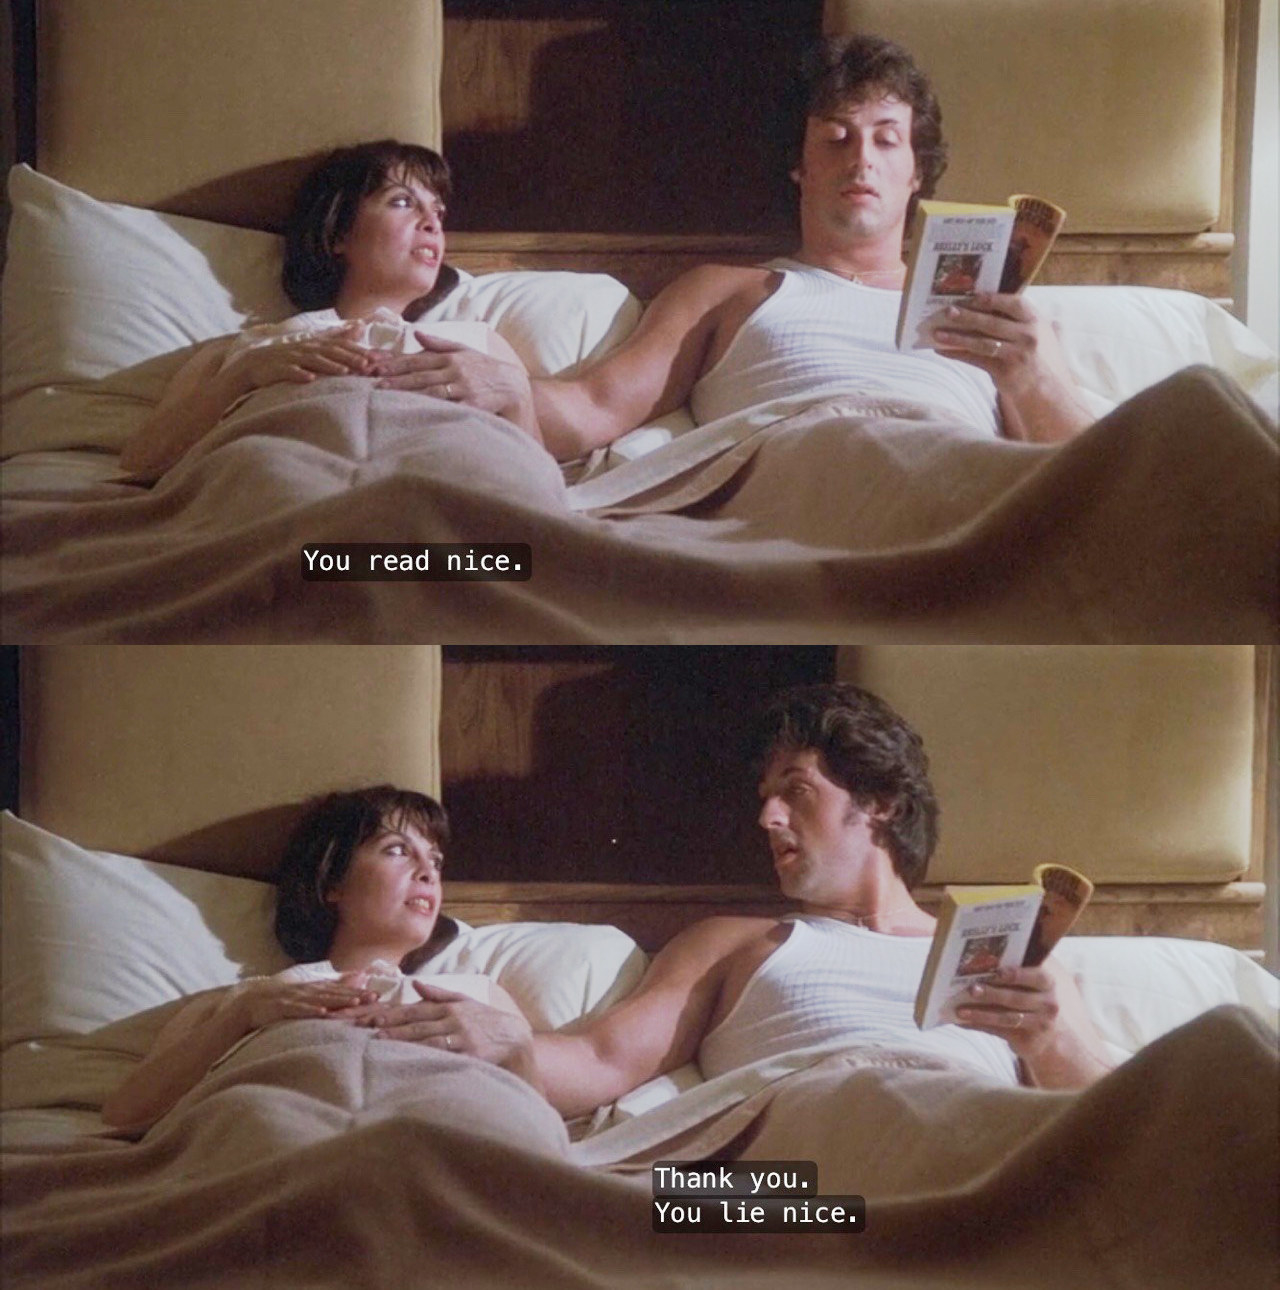 A split image from the movie Rocky 2 in which Rocky and Adrian are in bed and Adrian says you read nice and Rocky replies you lie nice